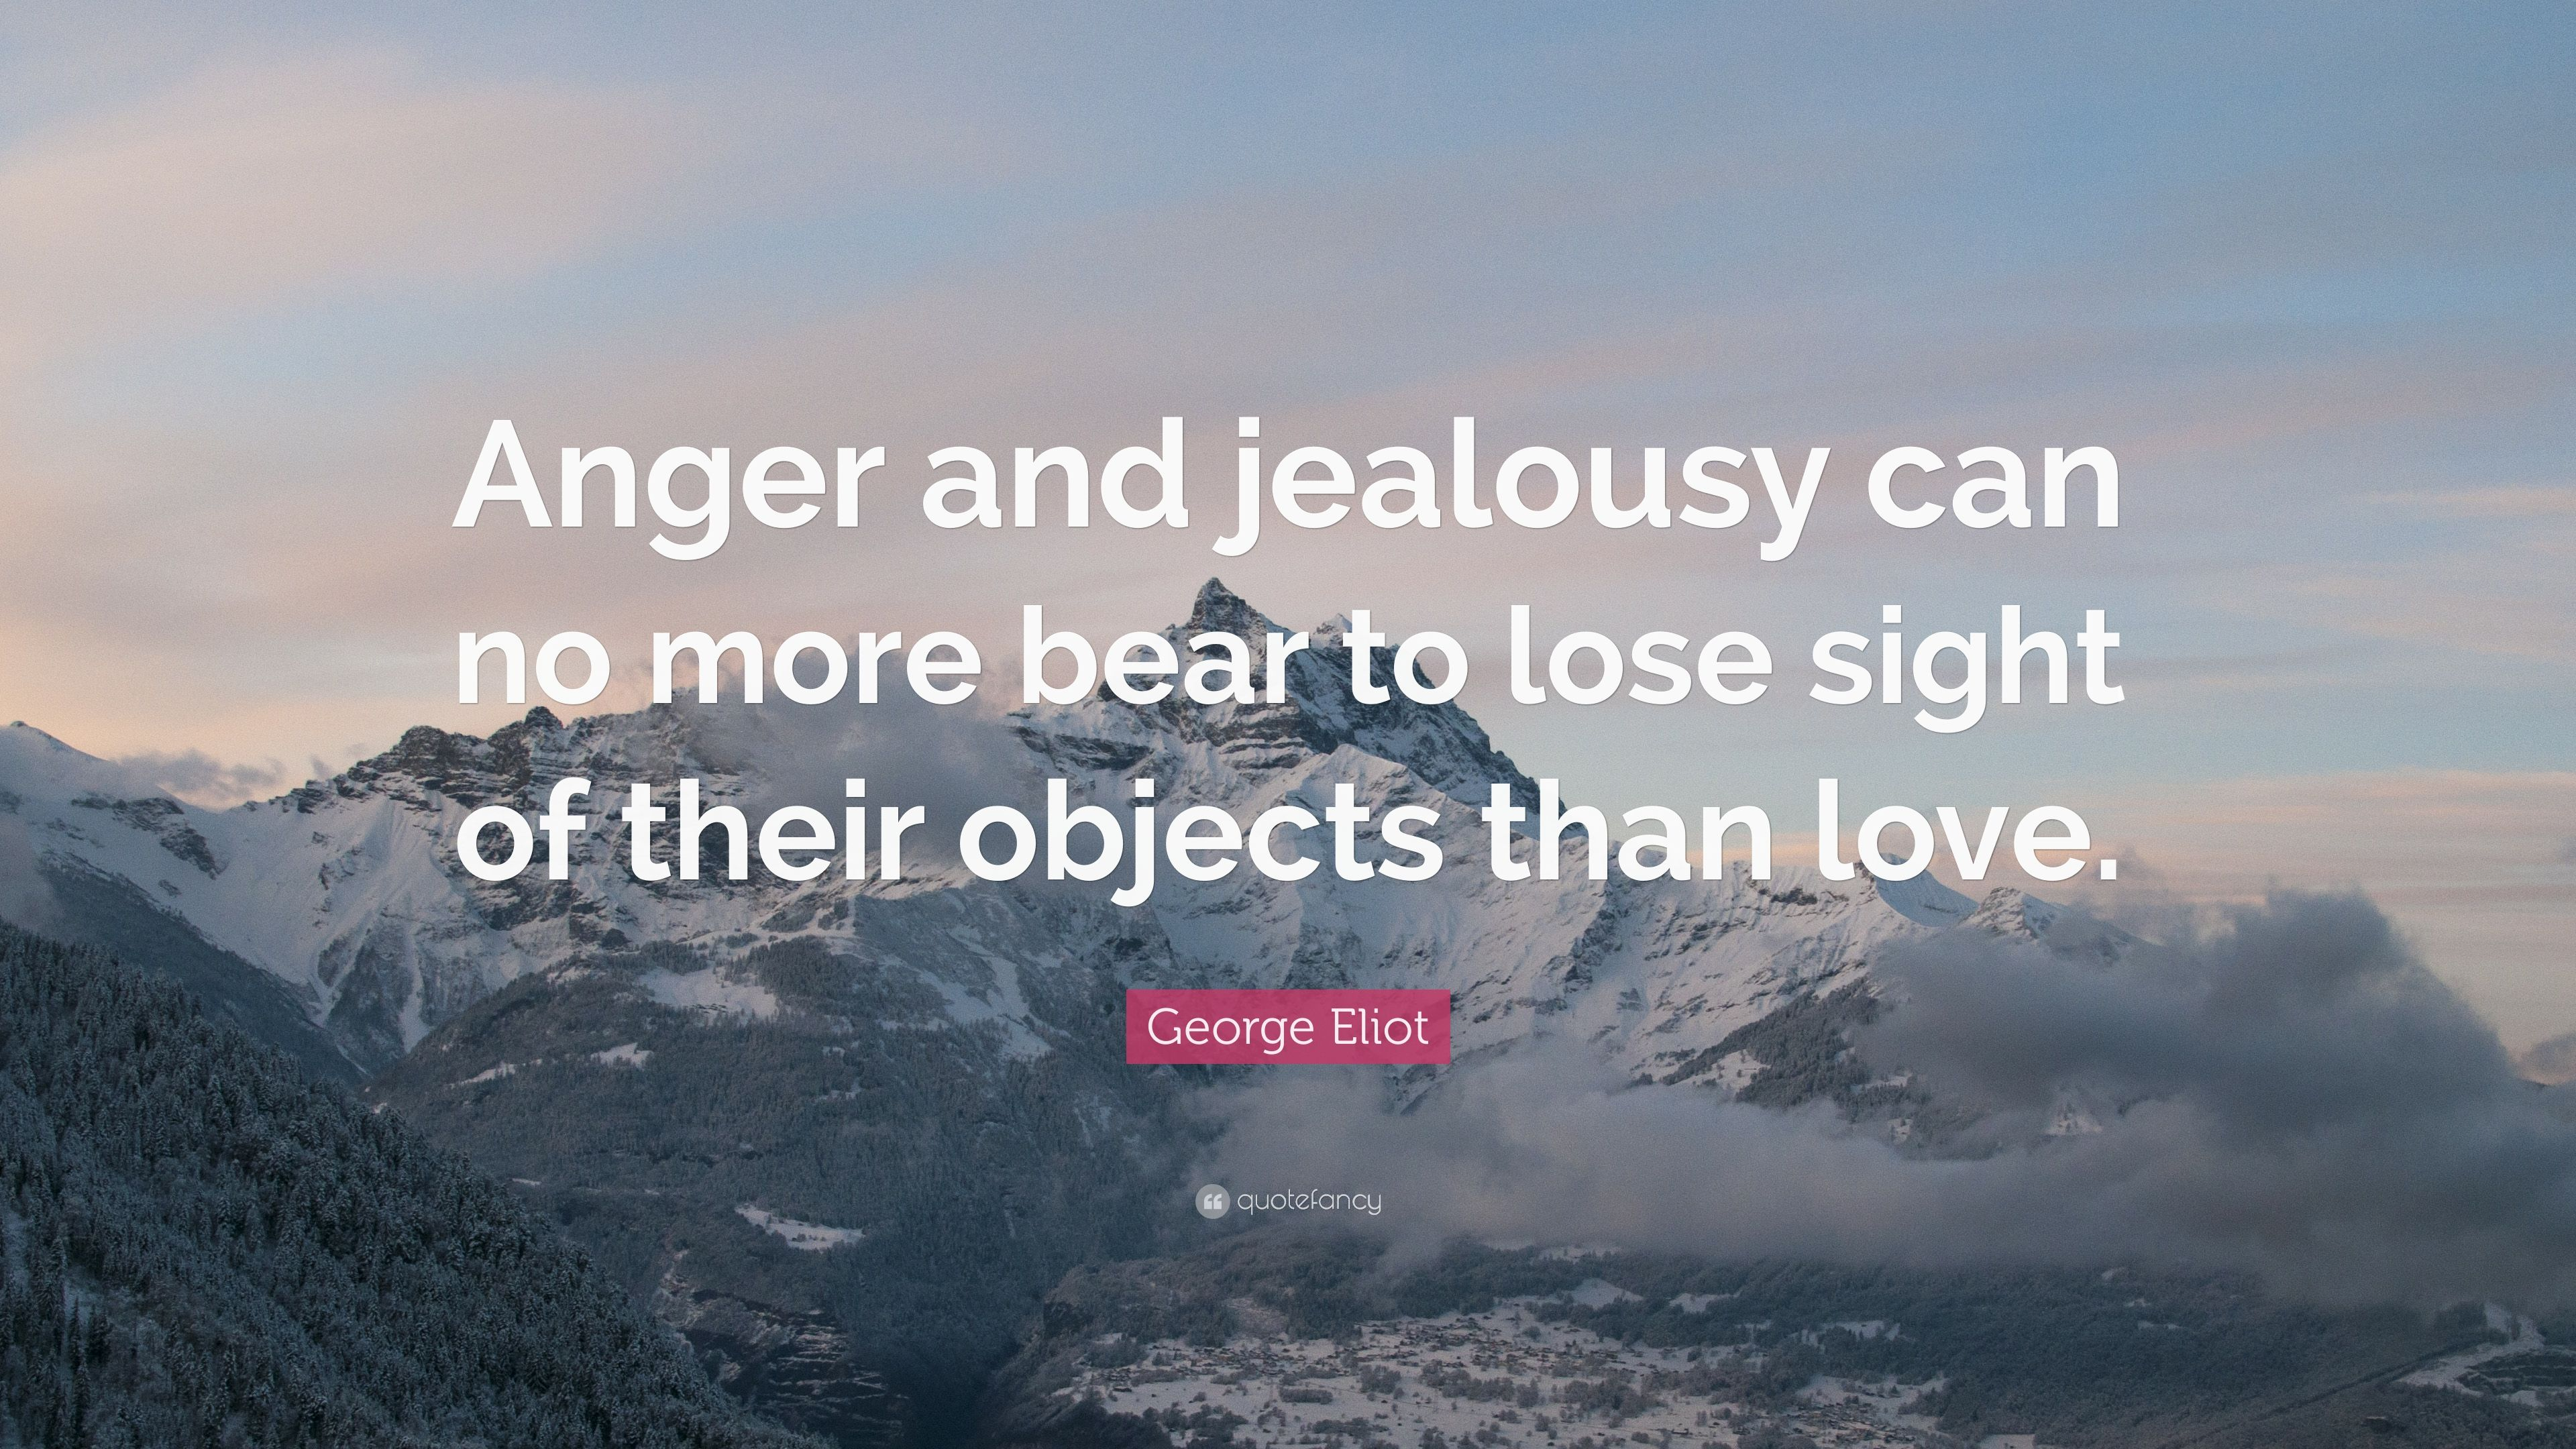 Superior George Eliot Quote: U201cAnger And Jealousy Can No More Bear To Lose Sight Of